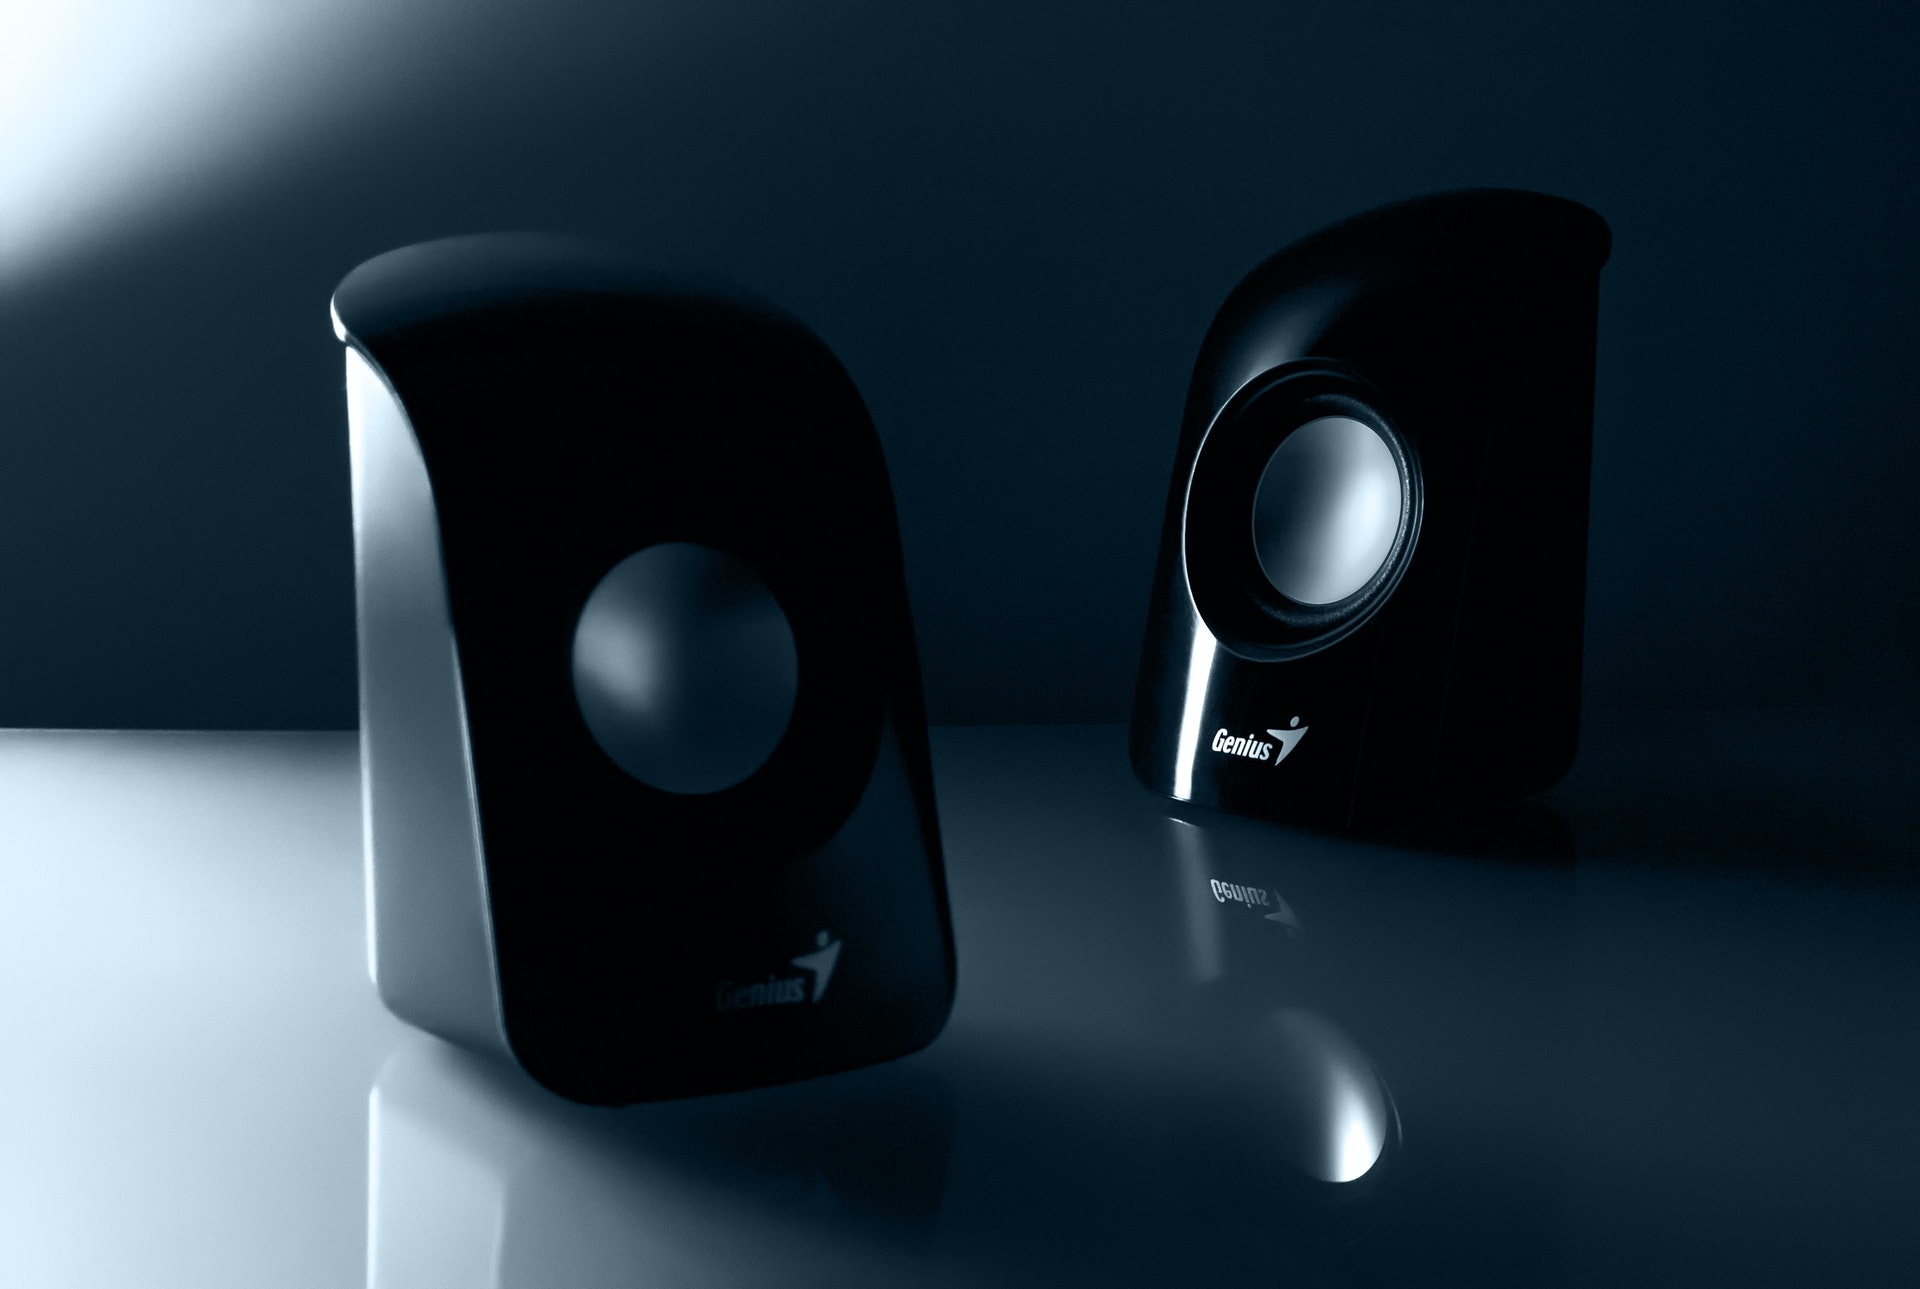 f and d speakers